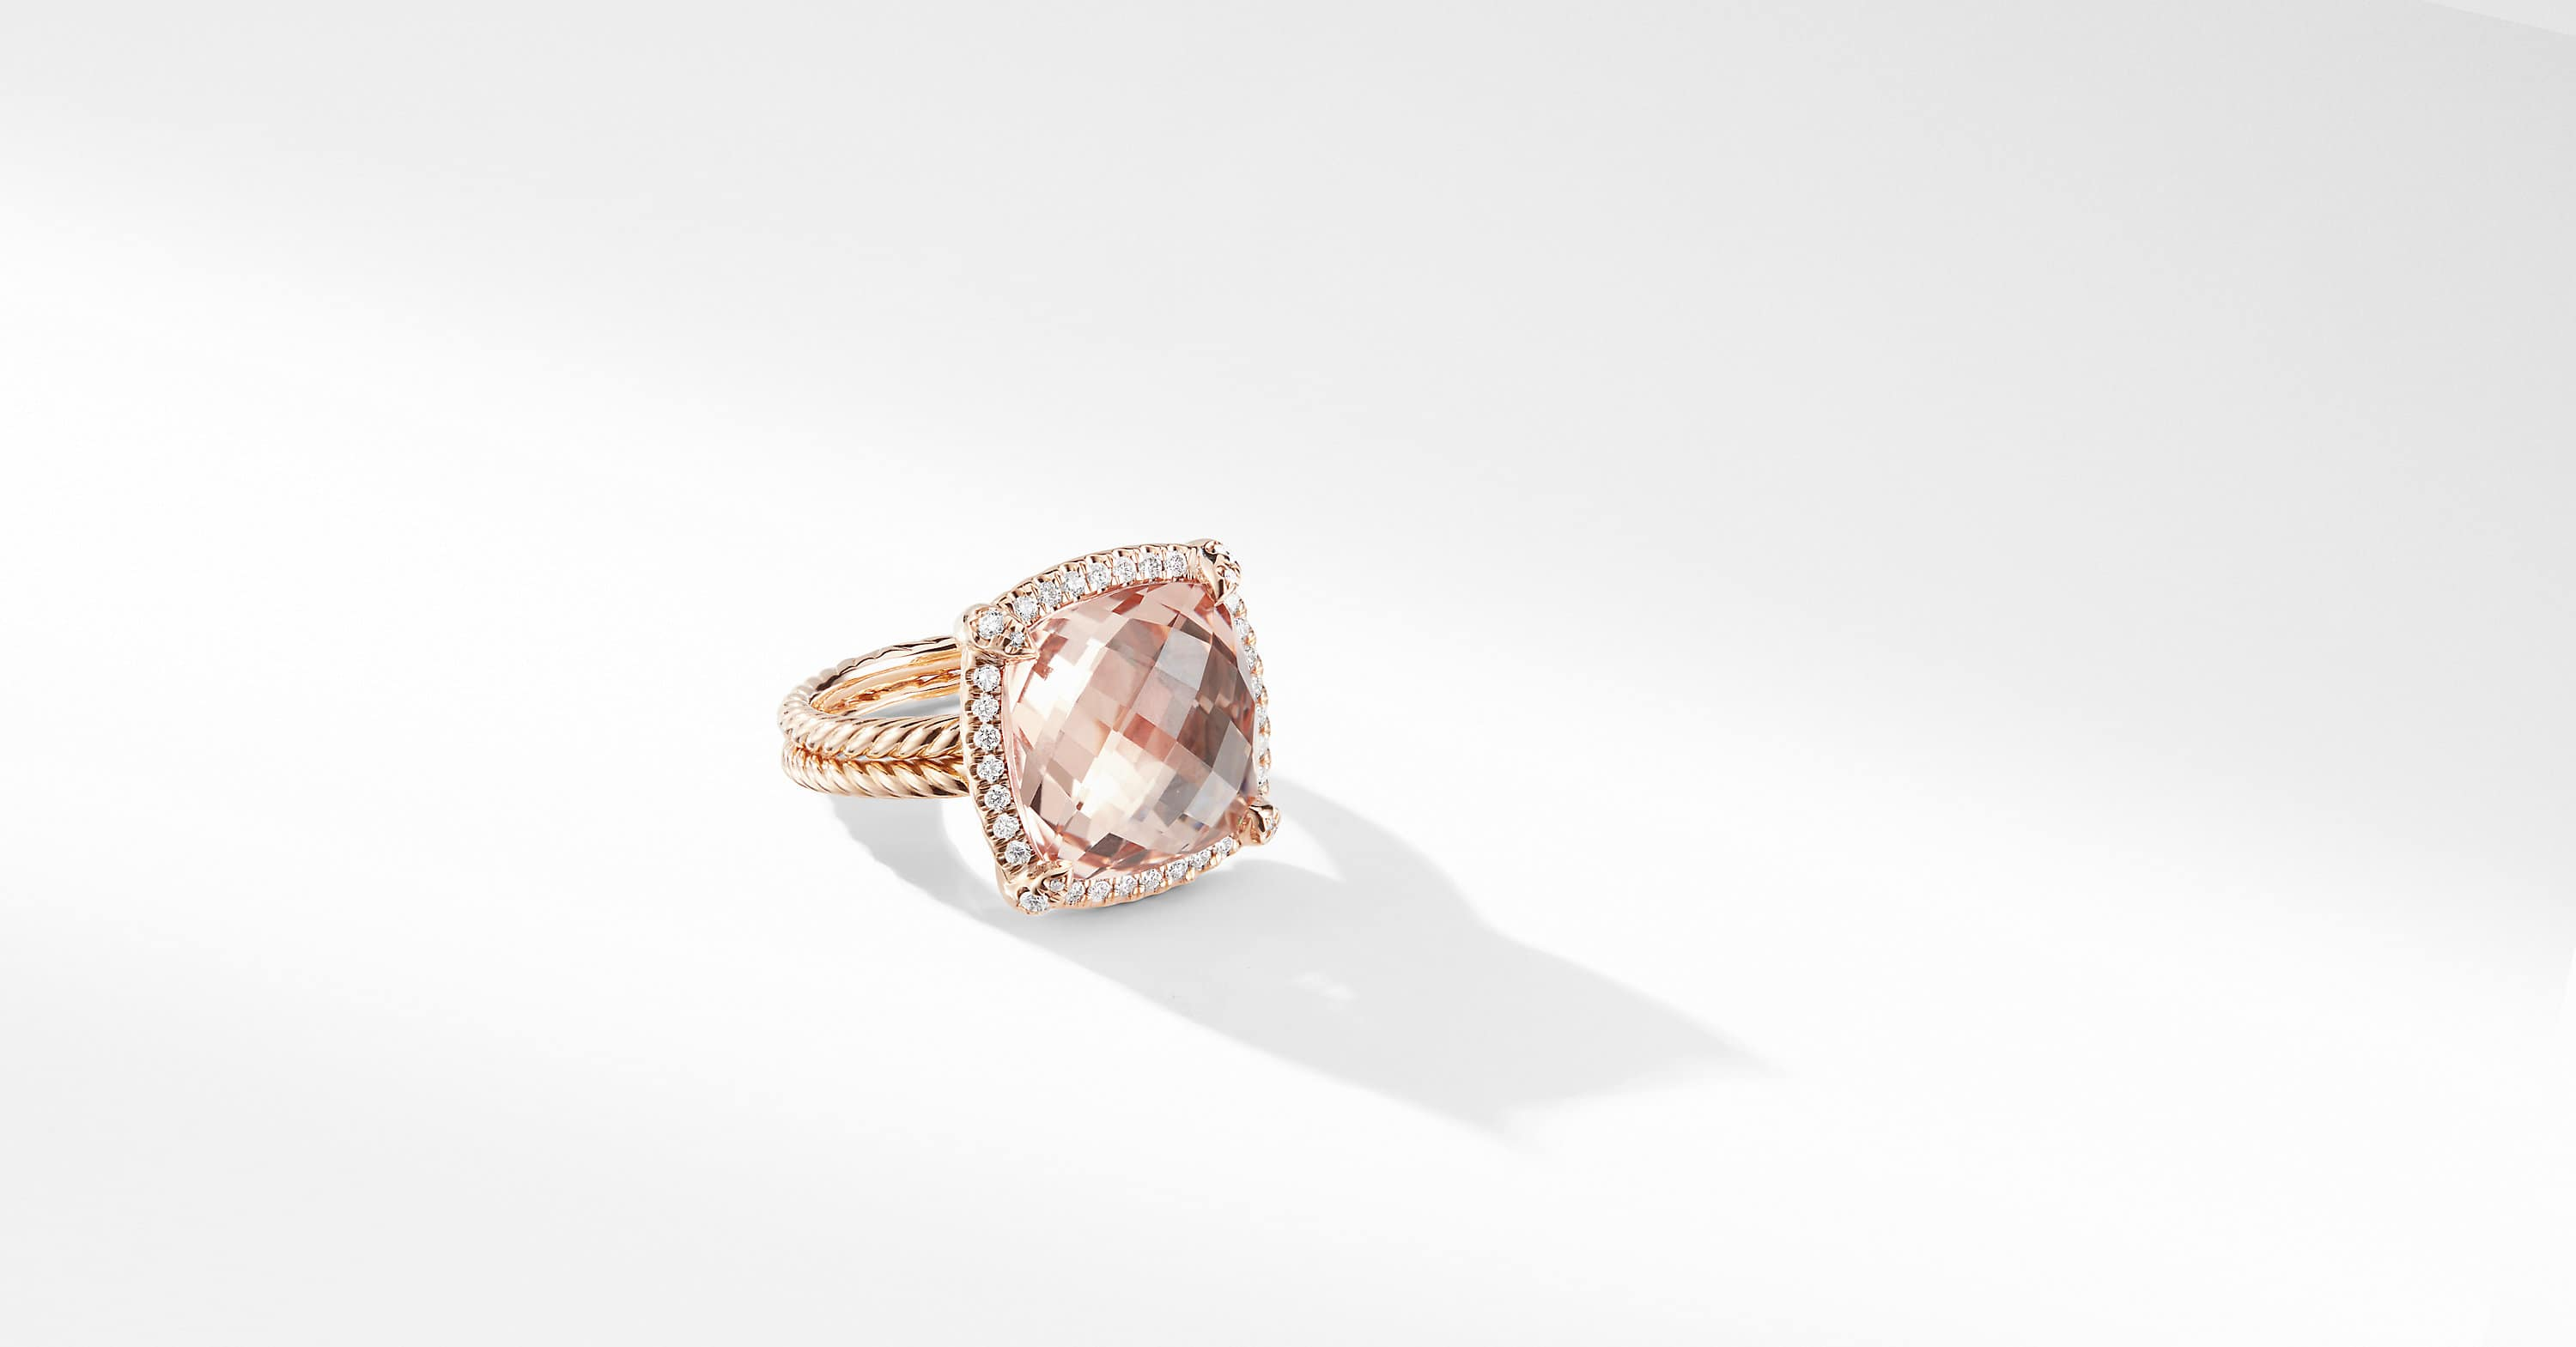 Bague Chatelaine Pavé bezel en or rose 18 carats, 14 mm